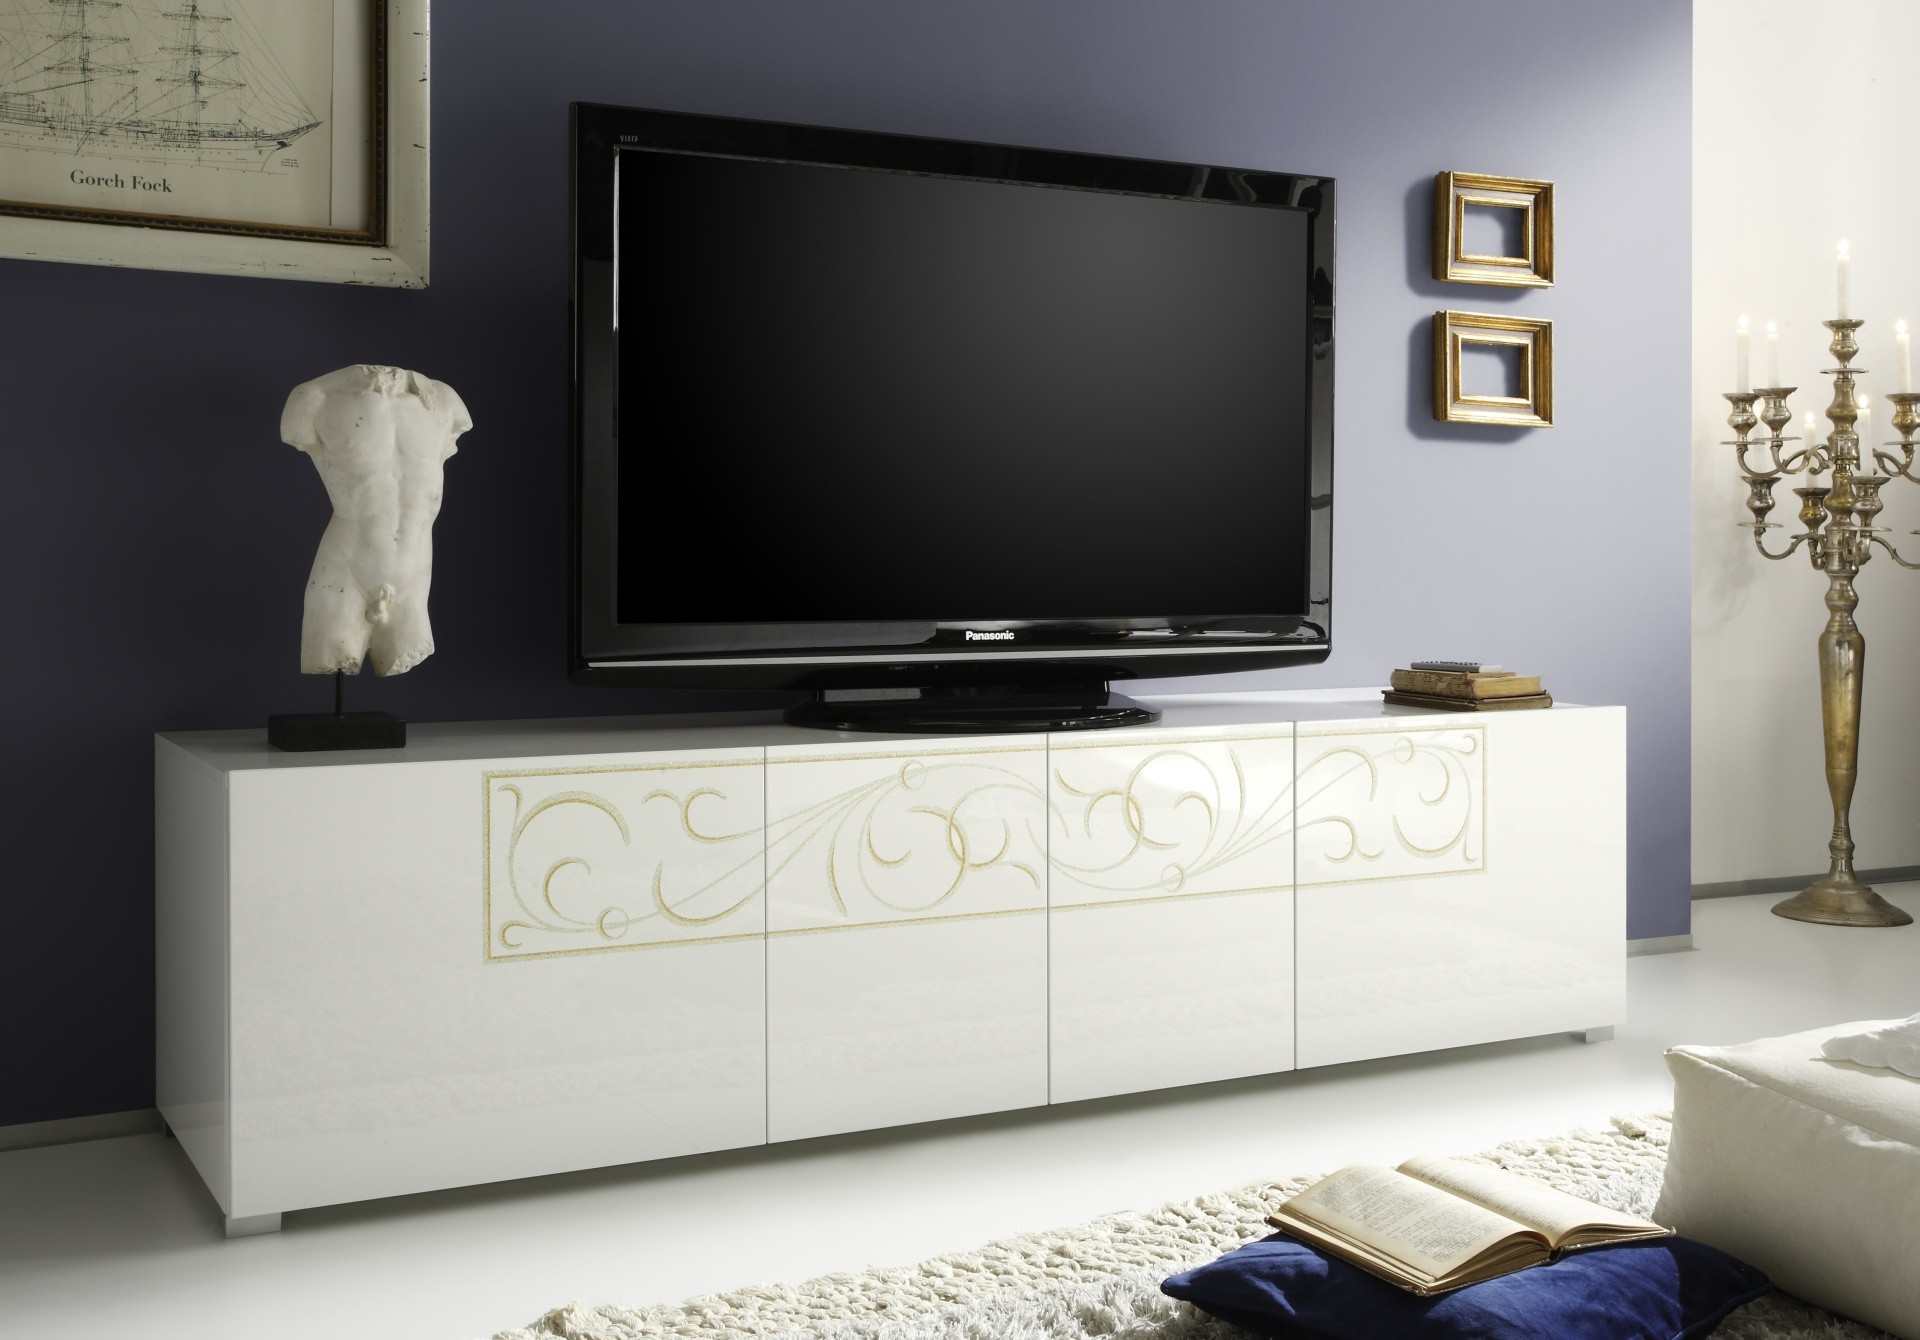 Meuble Tv Laqu Taupe Awesome Meuble Tv Blanc Et Taupe Meuble Tv